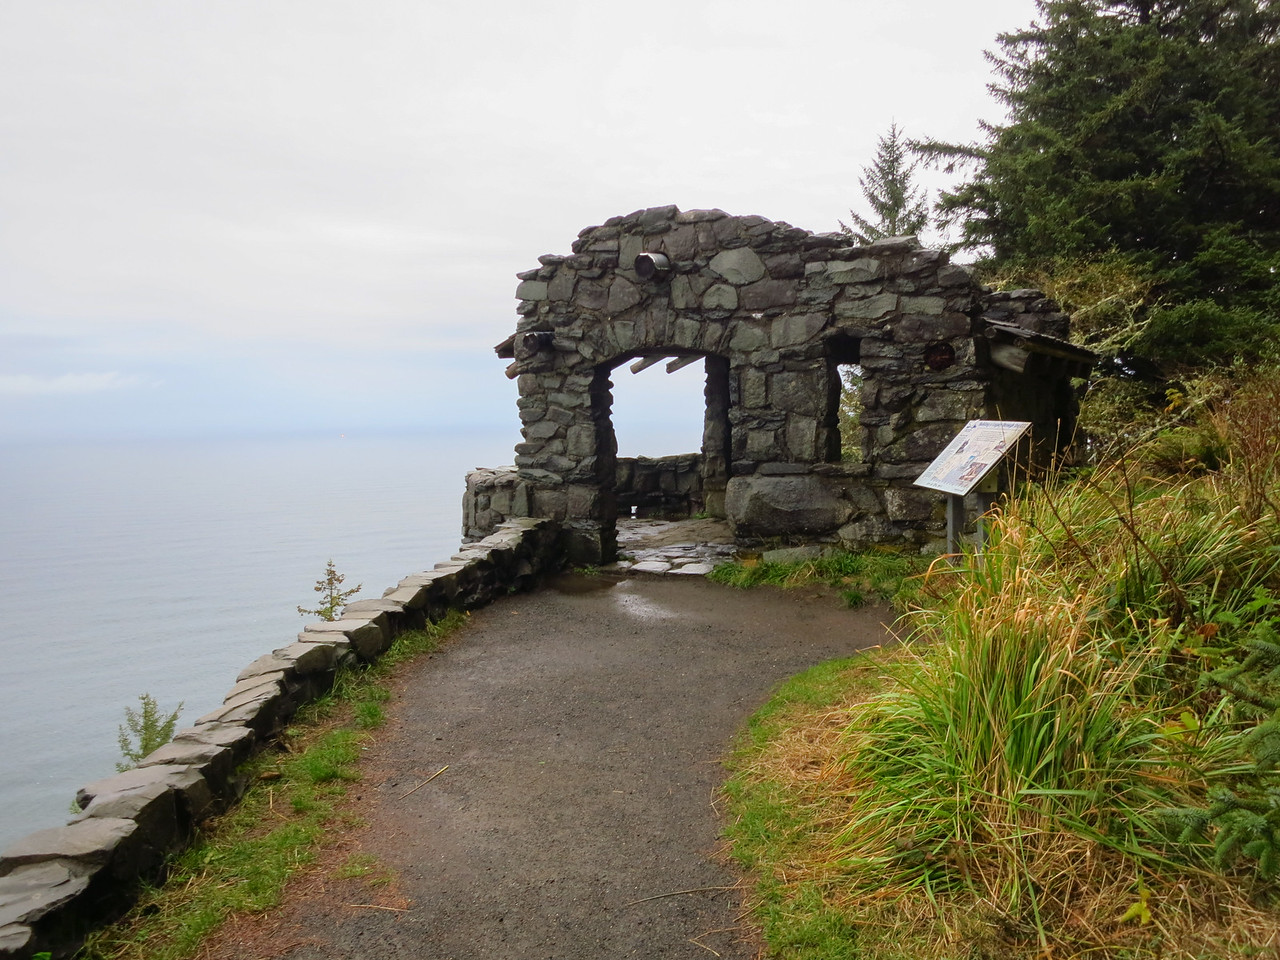 CCC shelter atop Cape Perpetua.